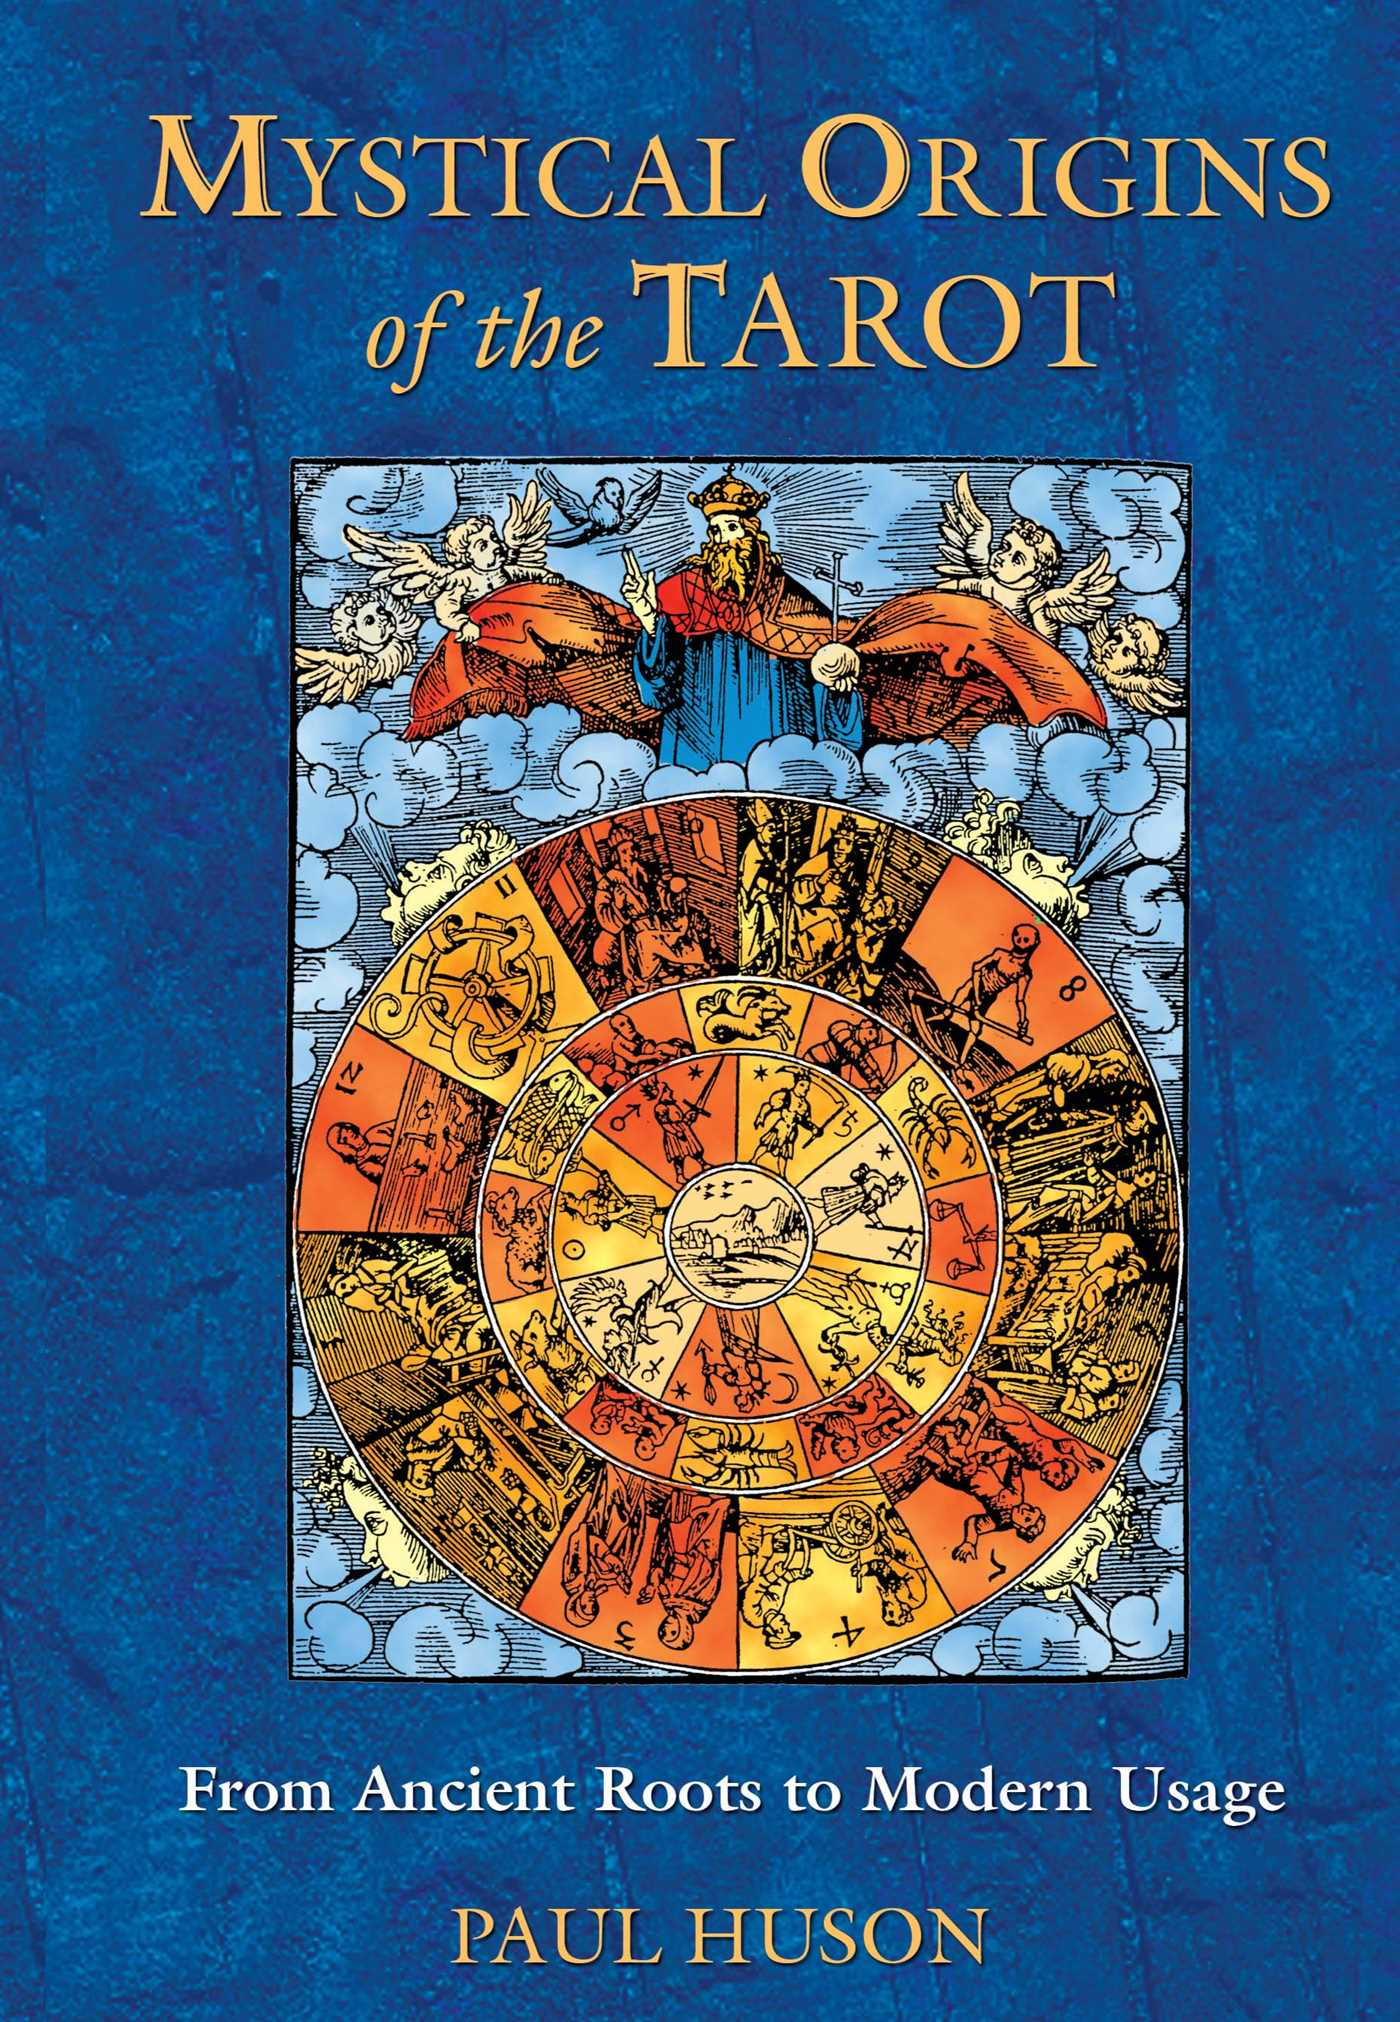 Mystical-origins-of-the-tarot-9780892811908_hr